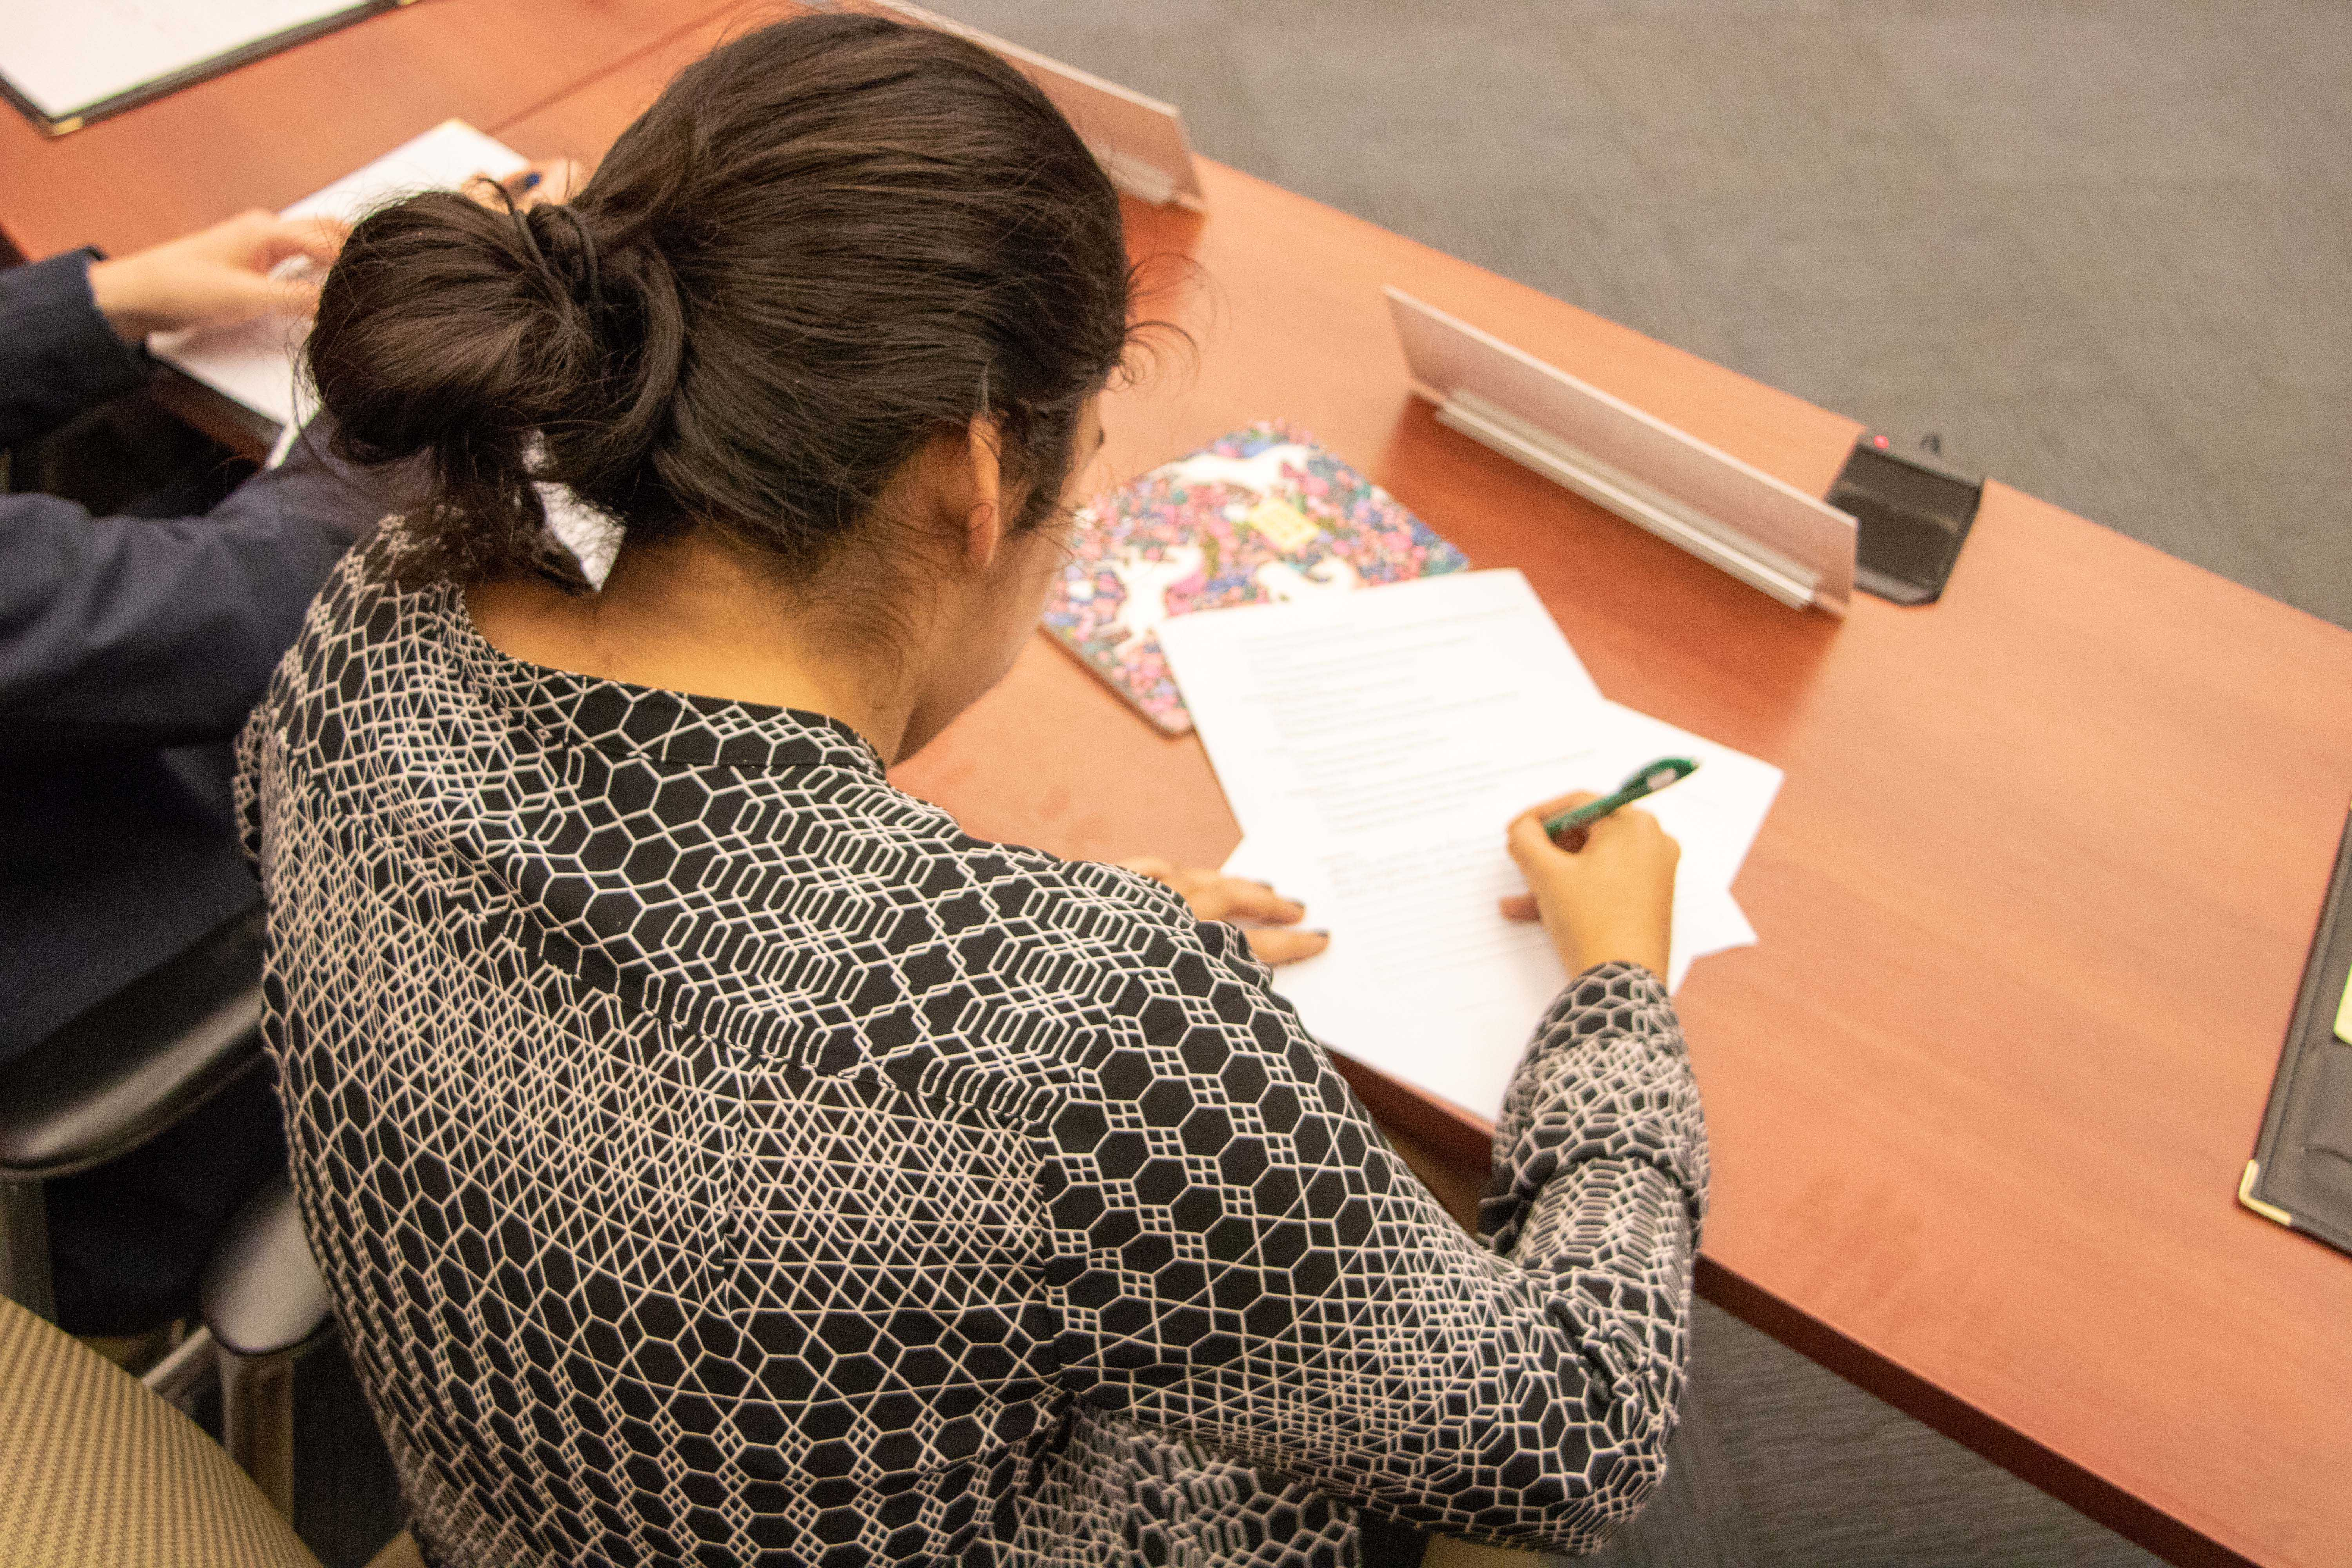 A student sits at a desk and fills out a form